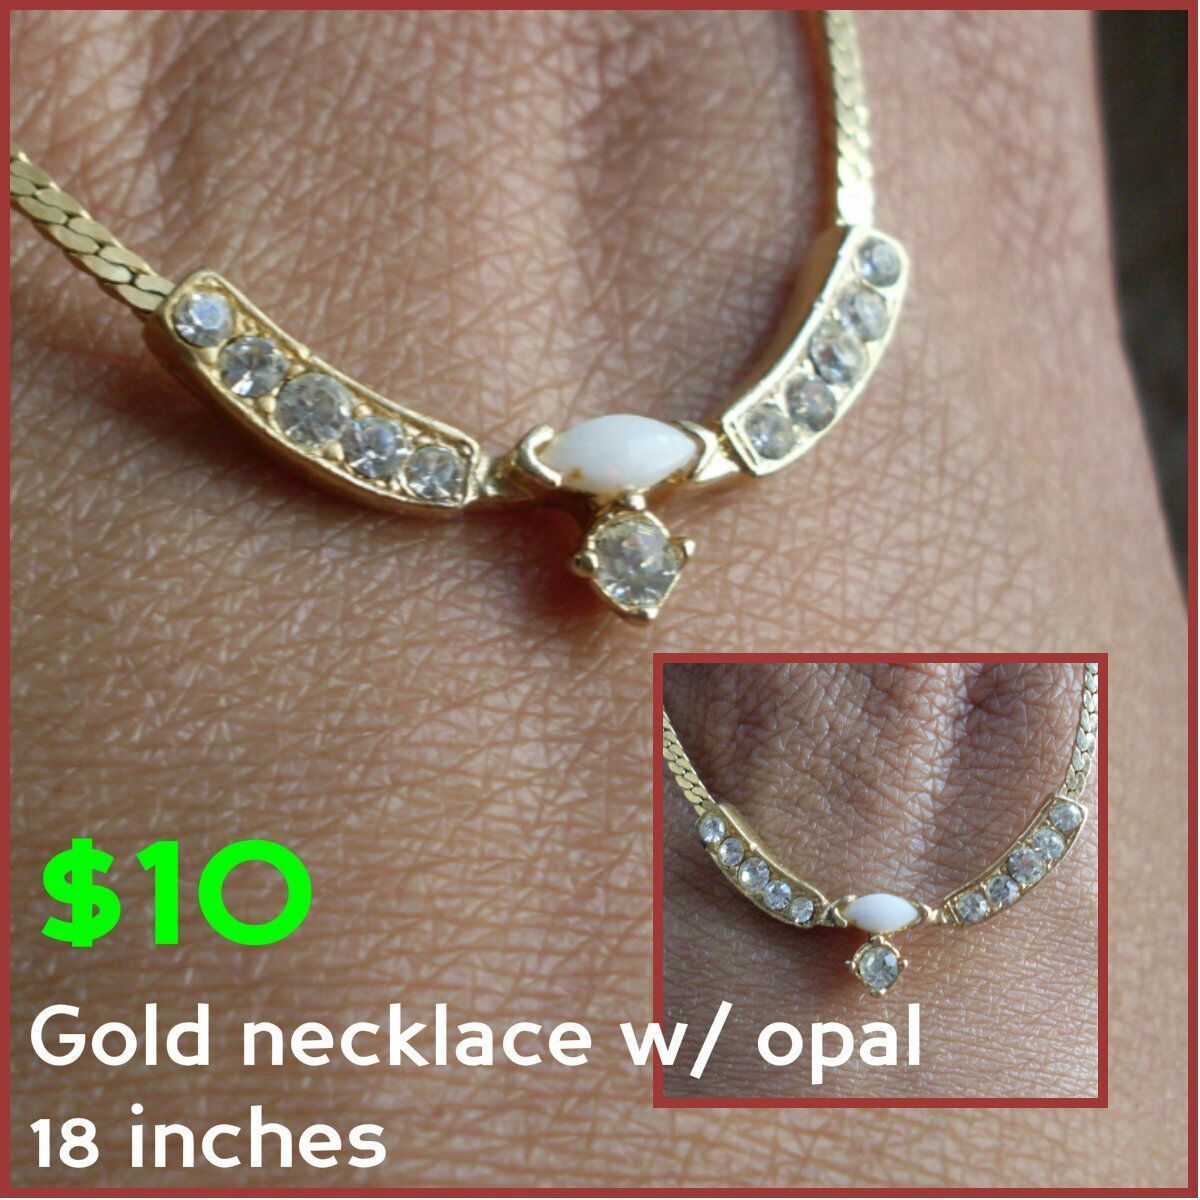 Gold necklace w/ opal October birthstone